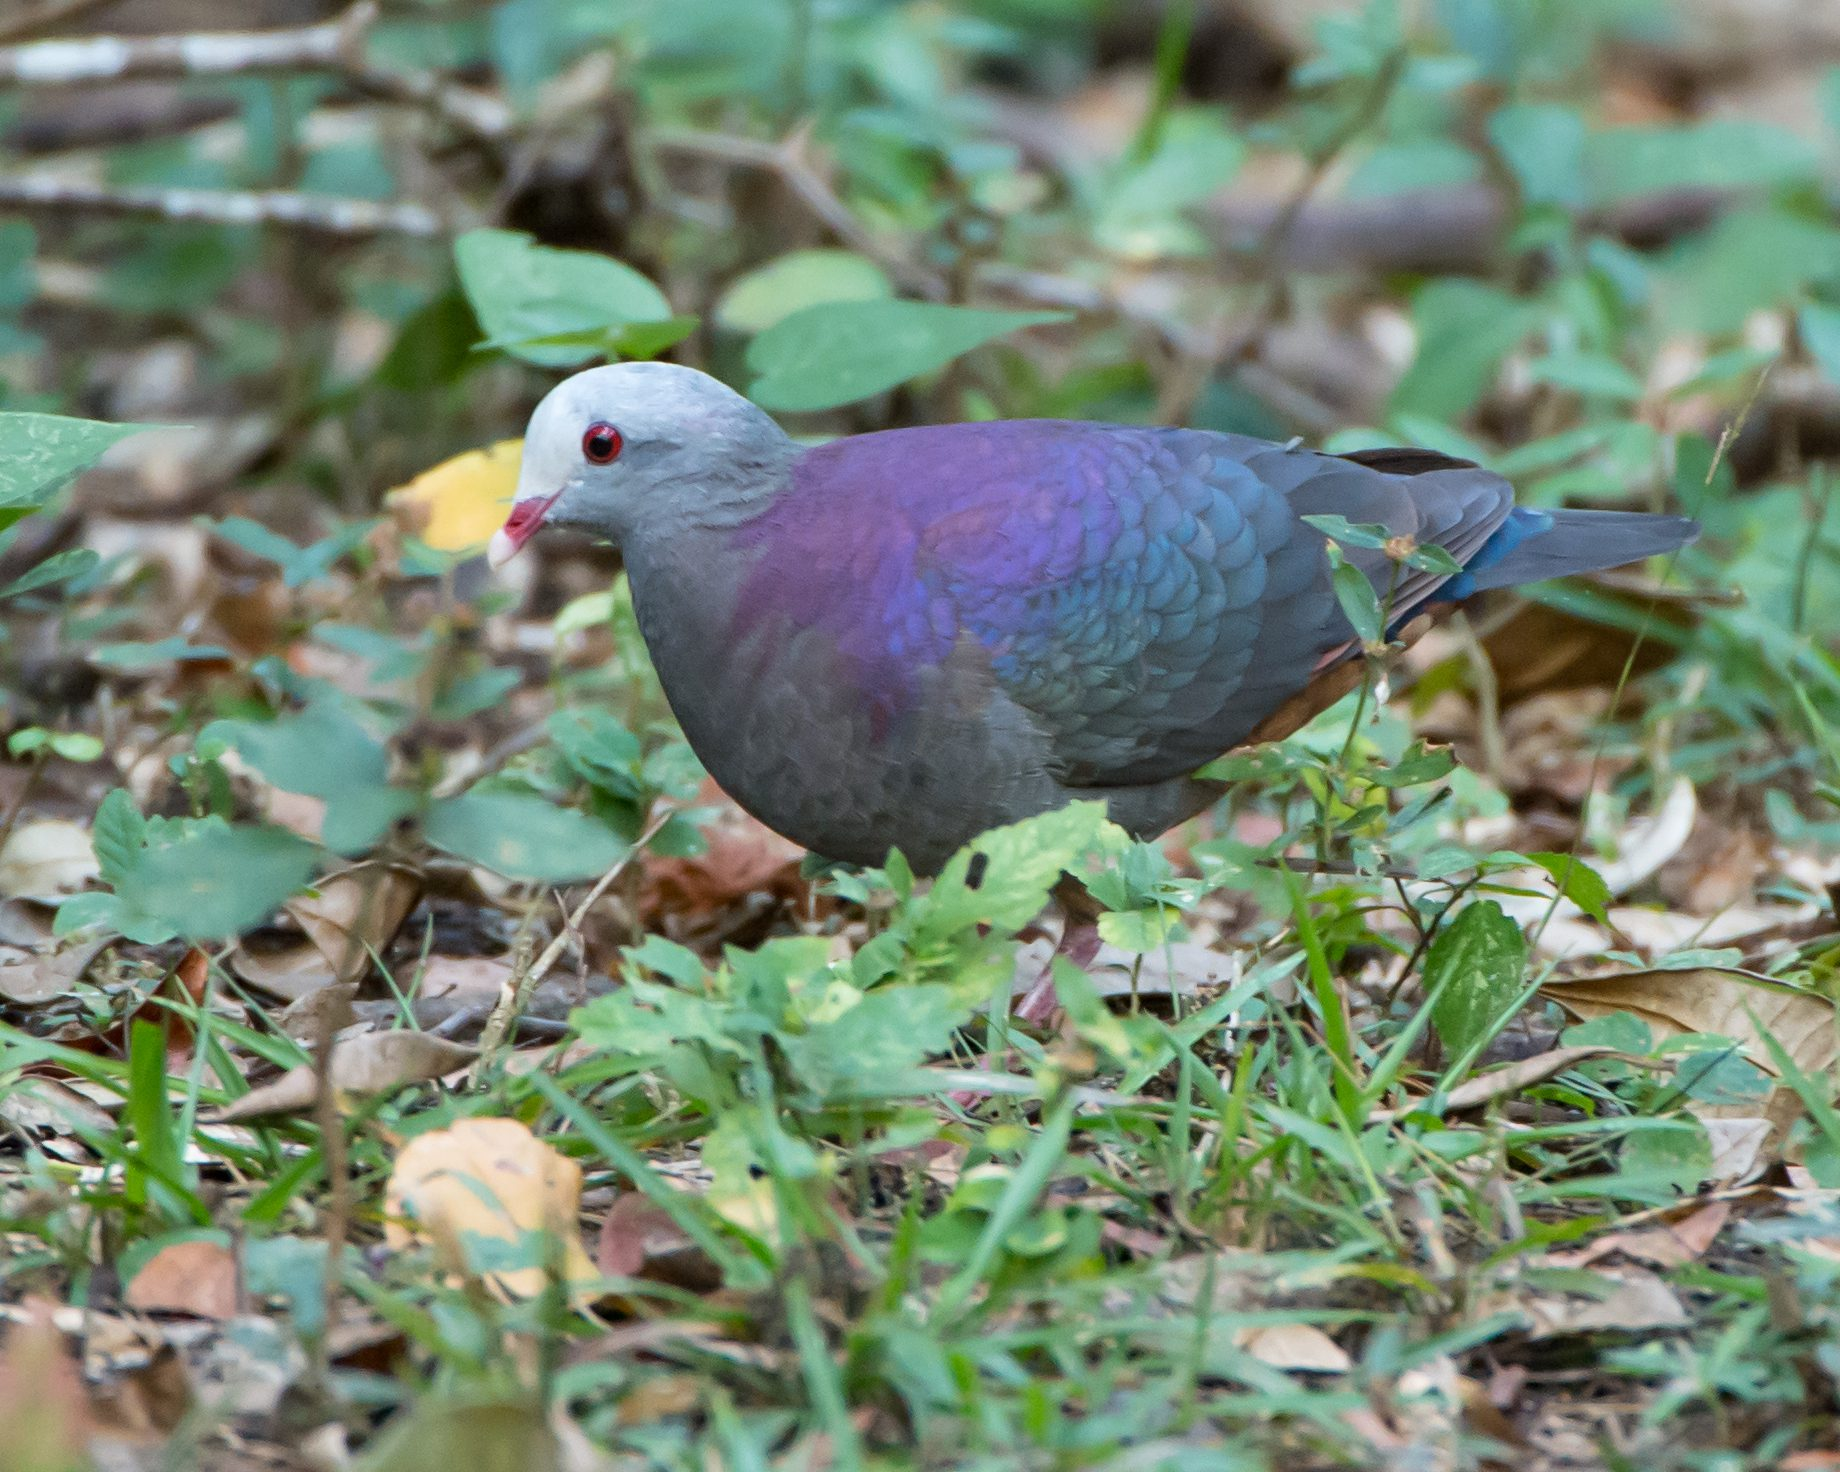 This plump species of Quail-dove is another beauty.  It's population, which only lives in Cuba, considered threatened and vulnerable.